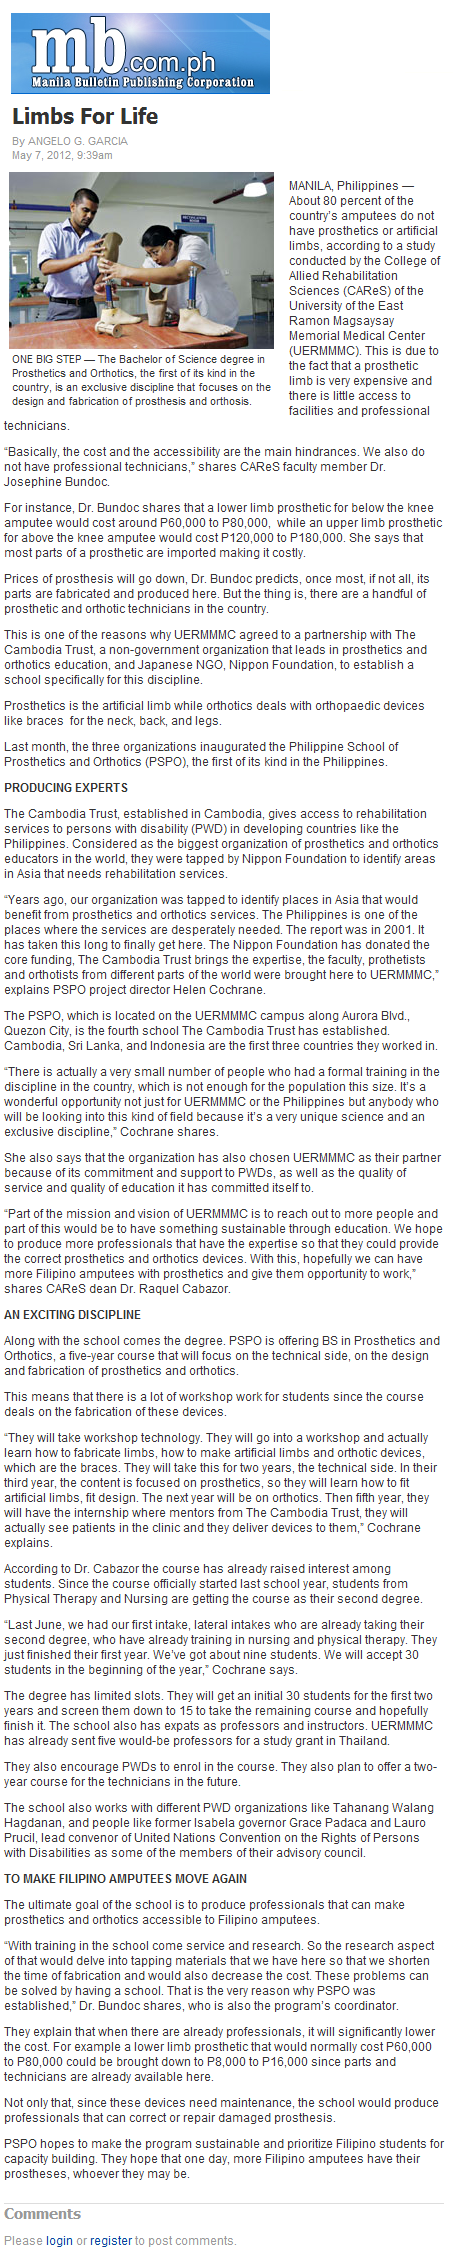 Limbs For Life - The Manila Bulletin Newspaper Online.png